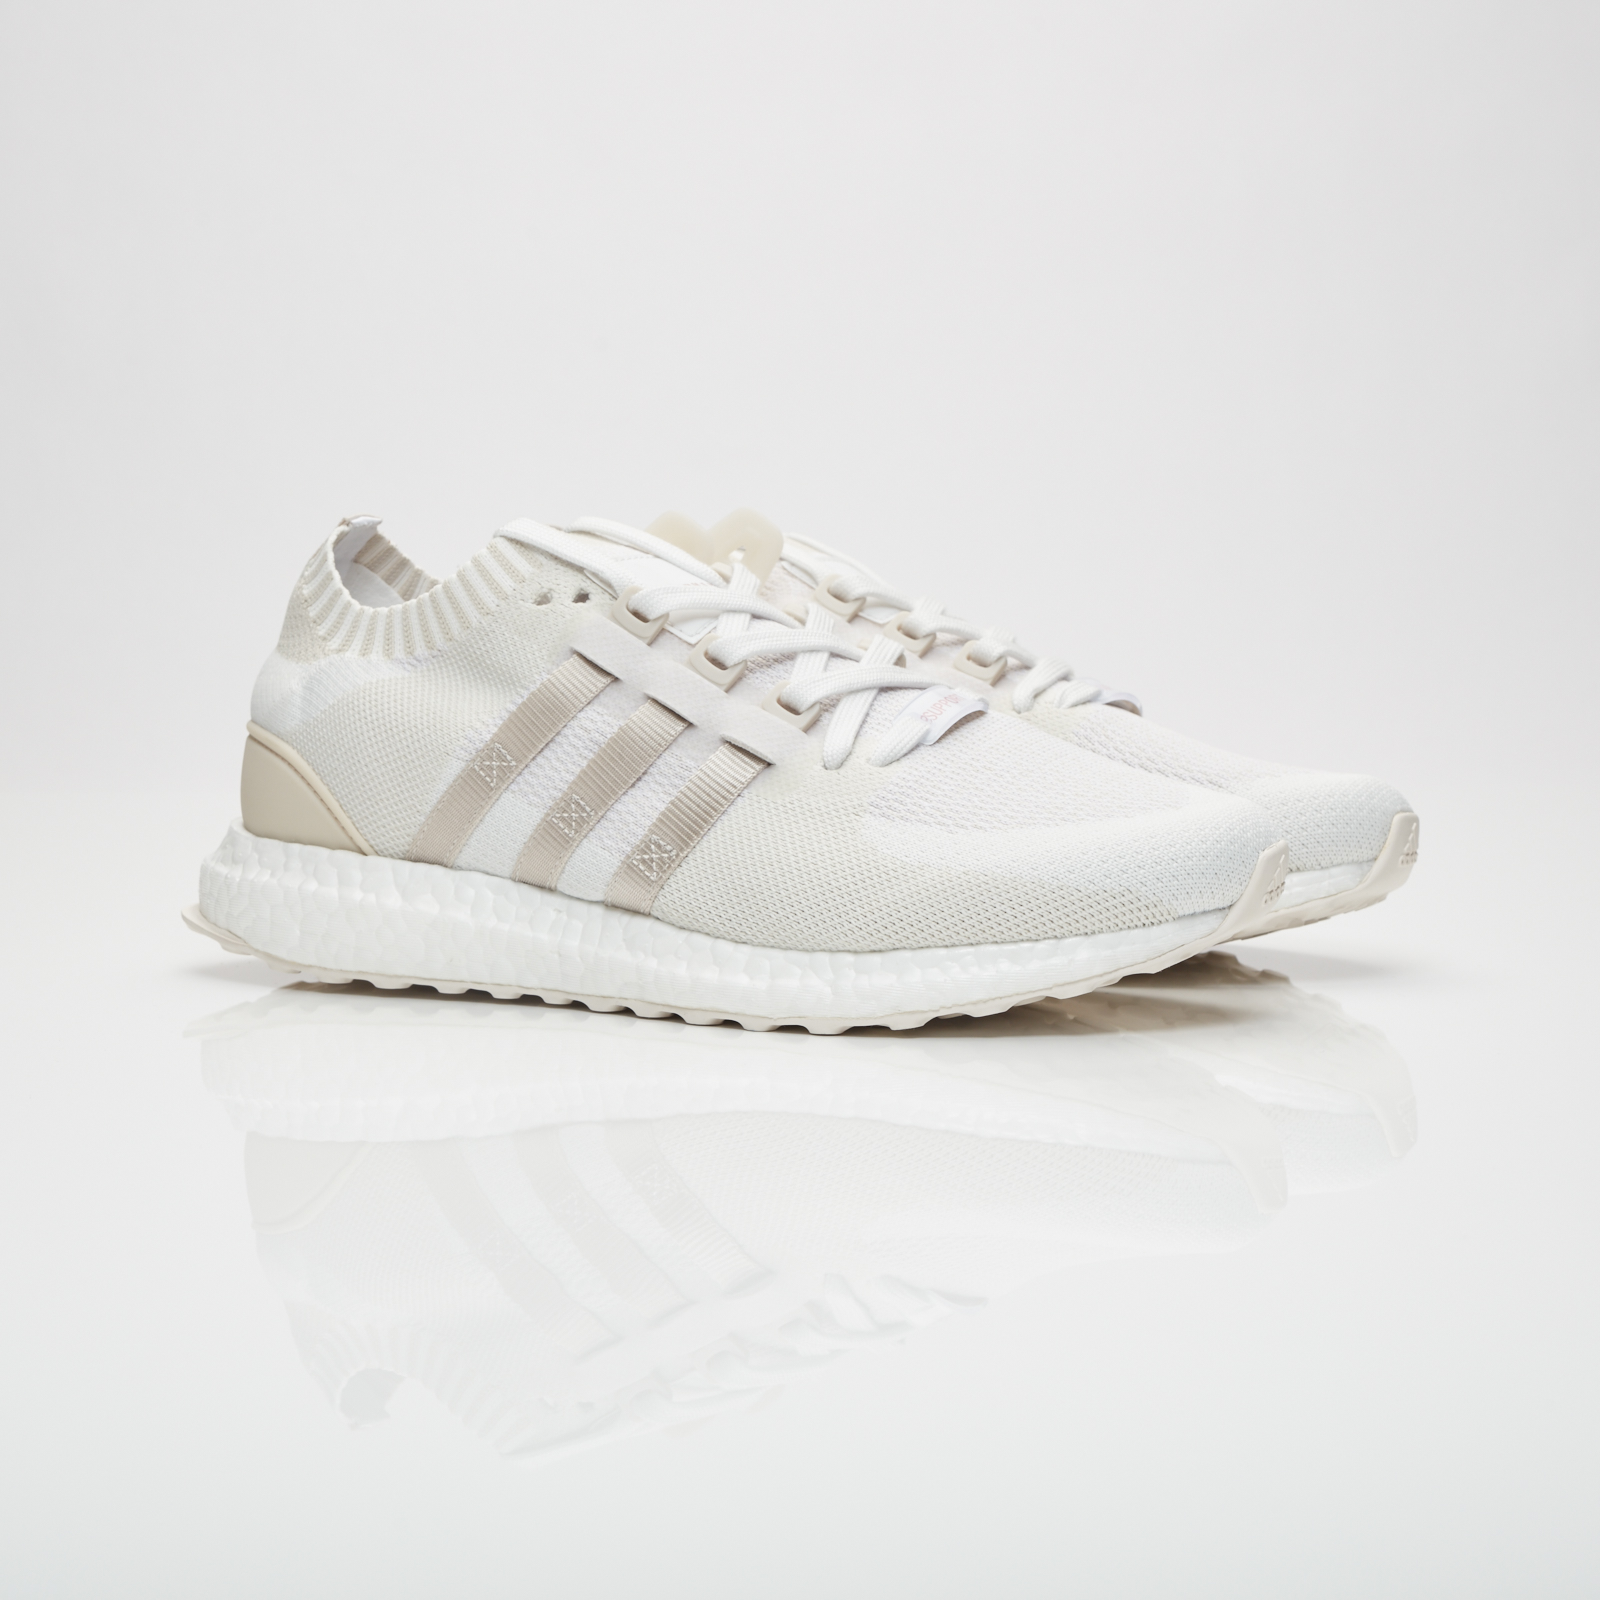 detailed look 3edd4 06411 adidas EQT Support Ultra Primeknit - Cq1894 - Sneakersnstuff ...